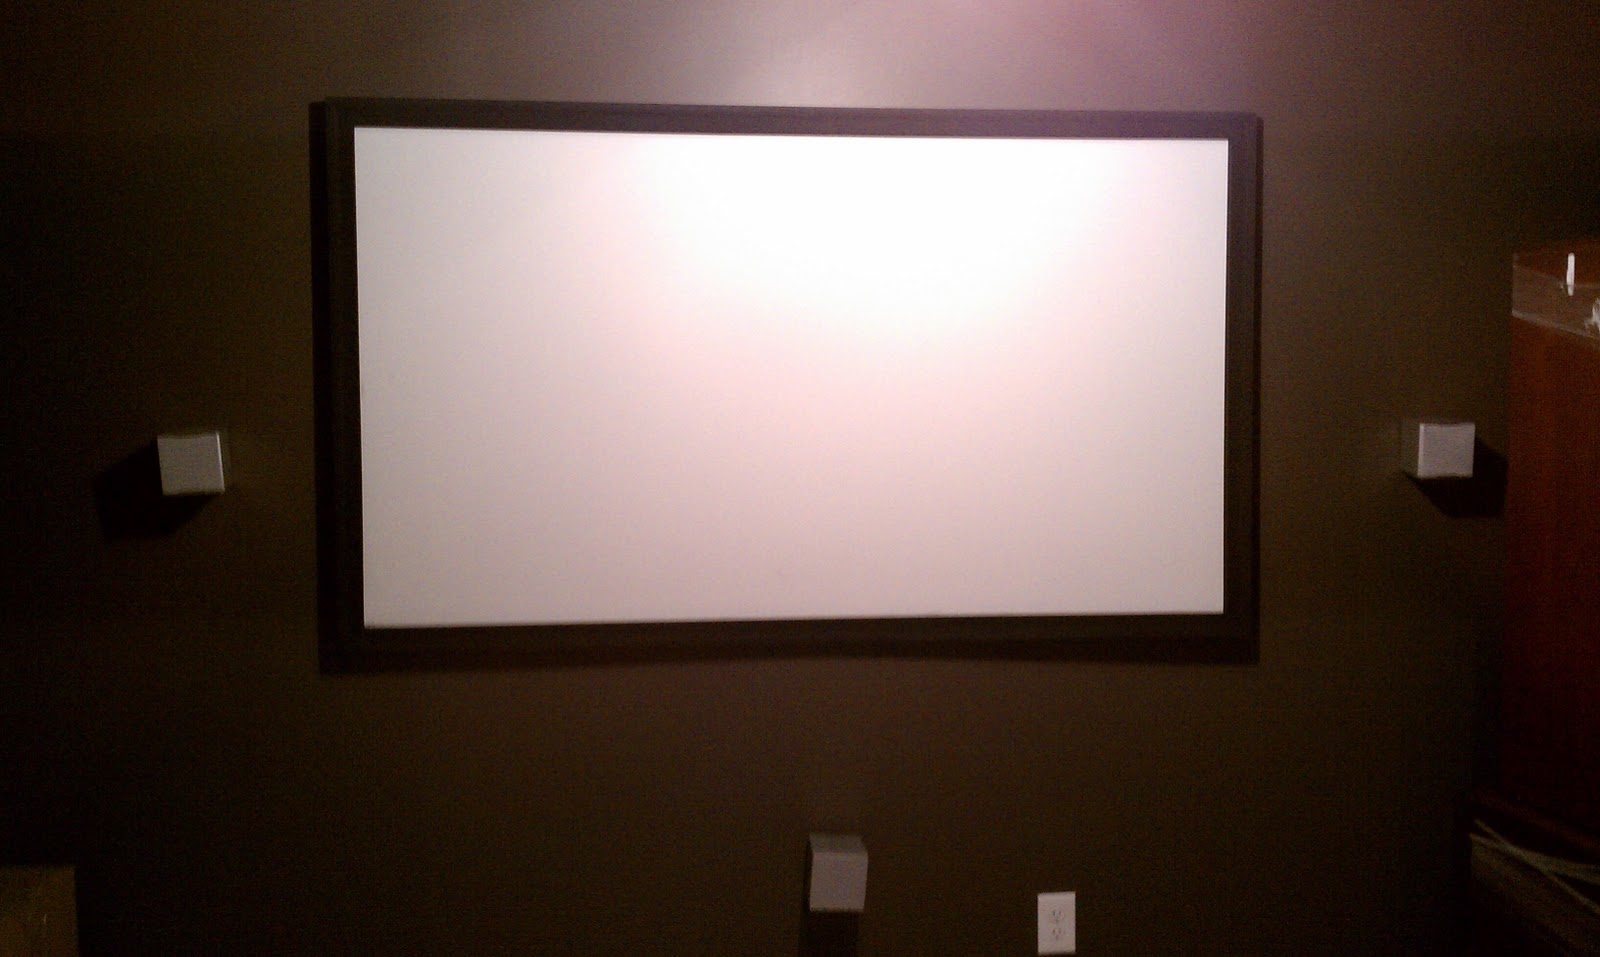 Home theater screen paint behr home painting for Paint projector screen